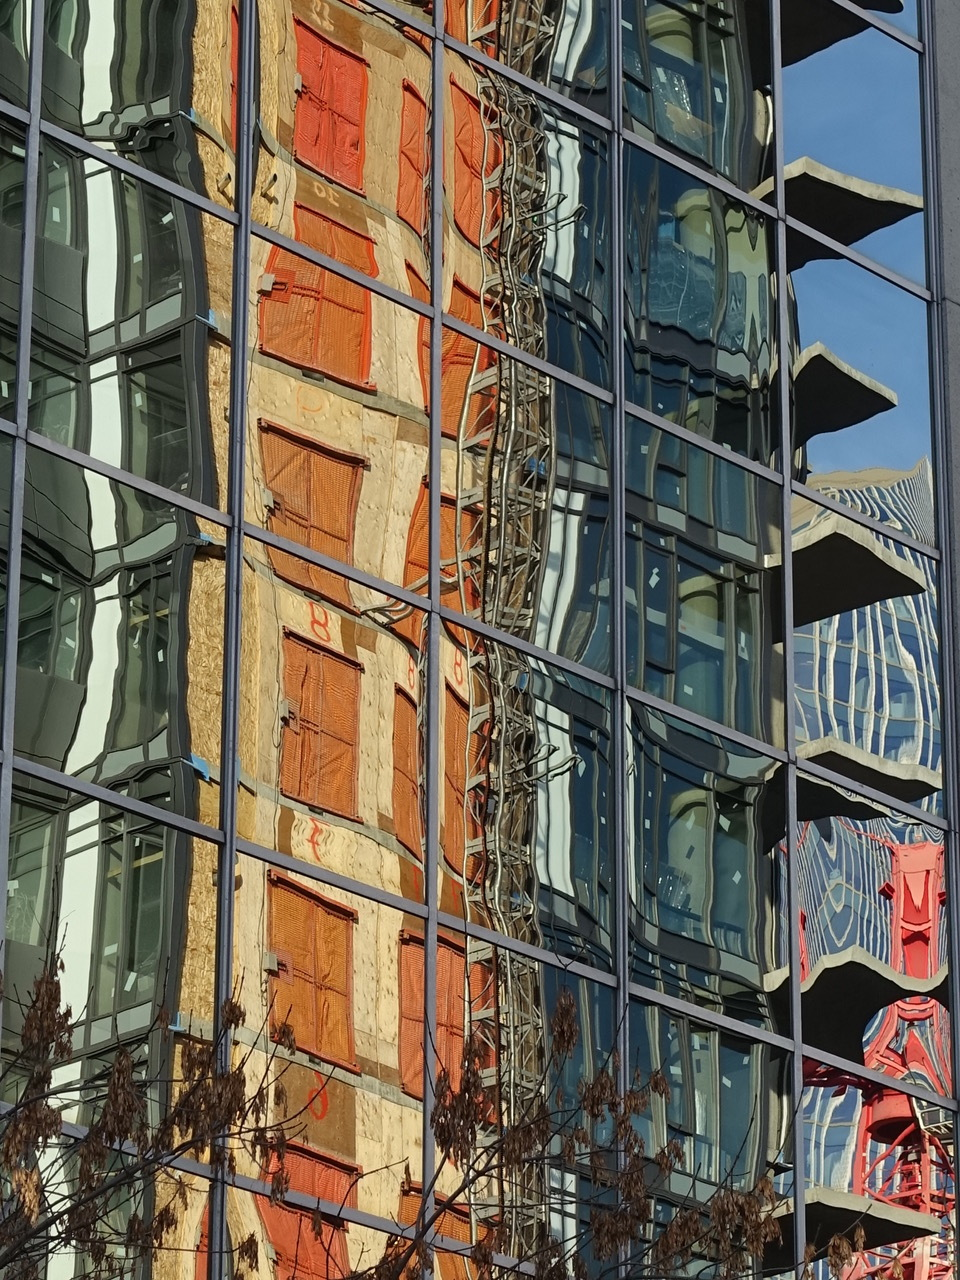 Calgary's architectural surrealism is evident across its 50+ block downtown core.